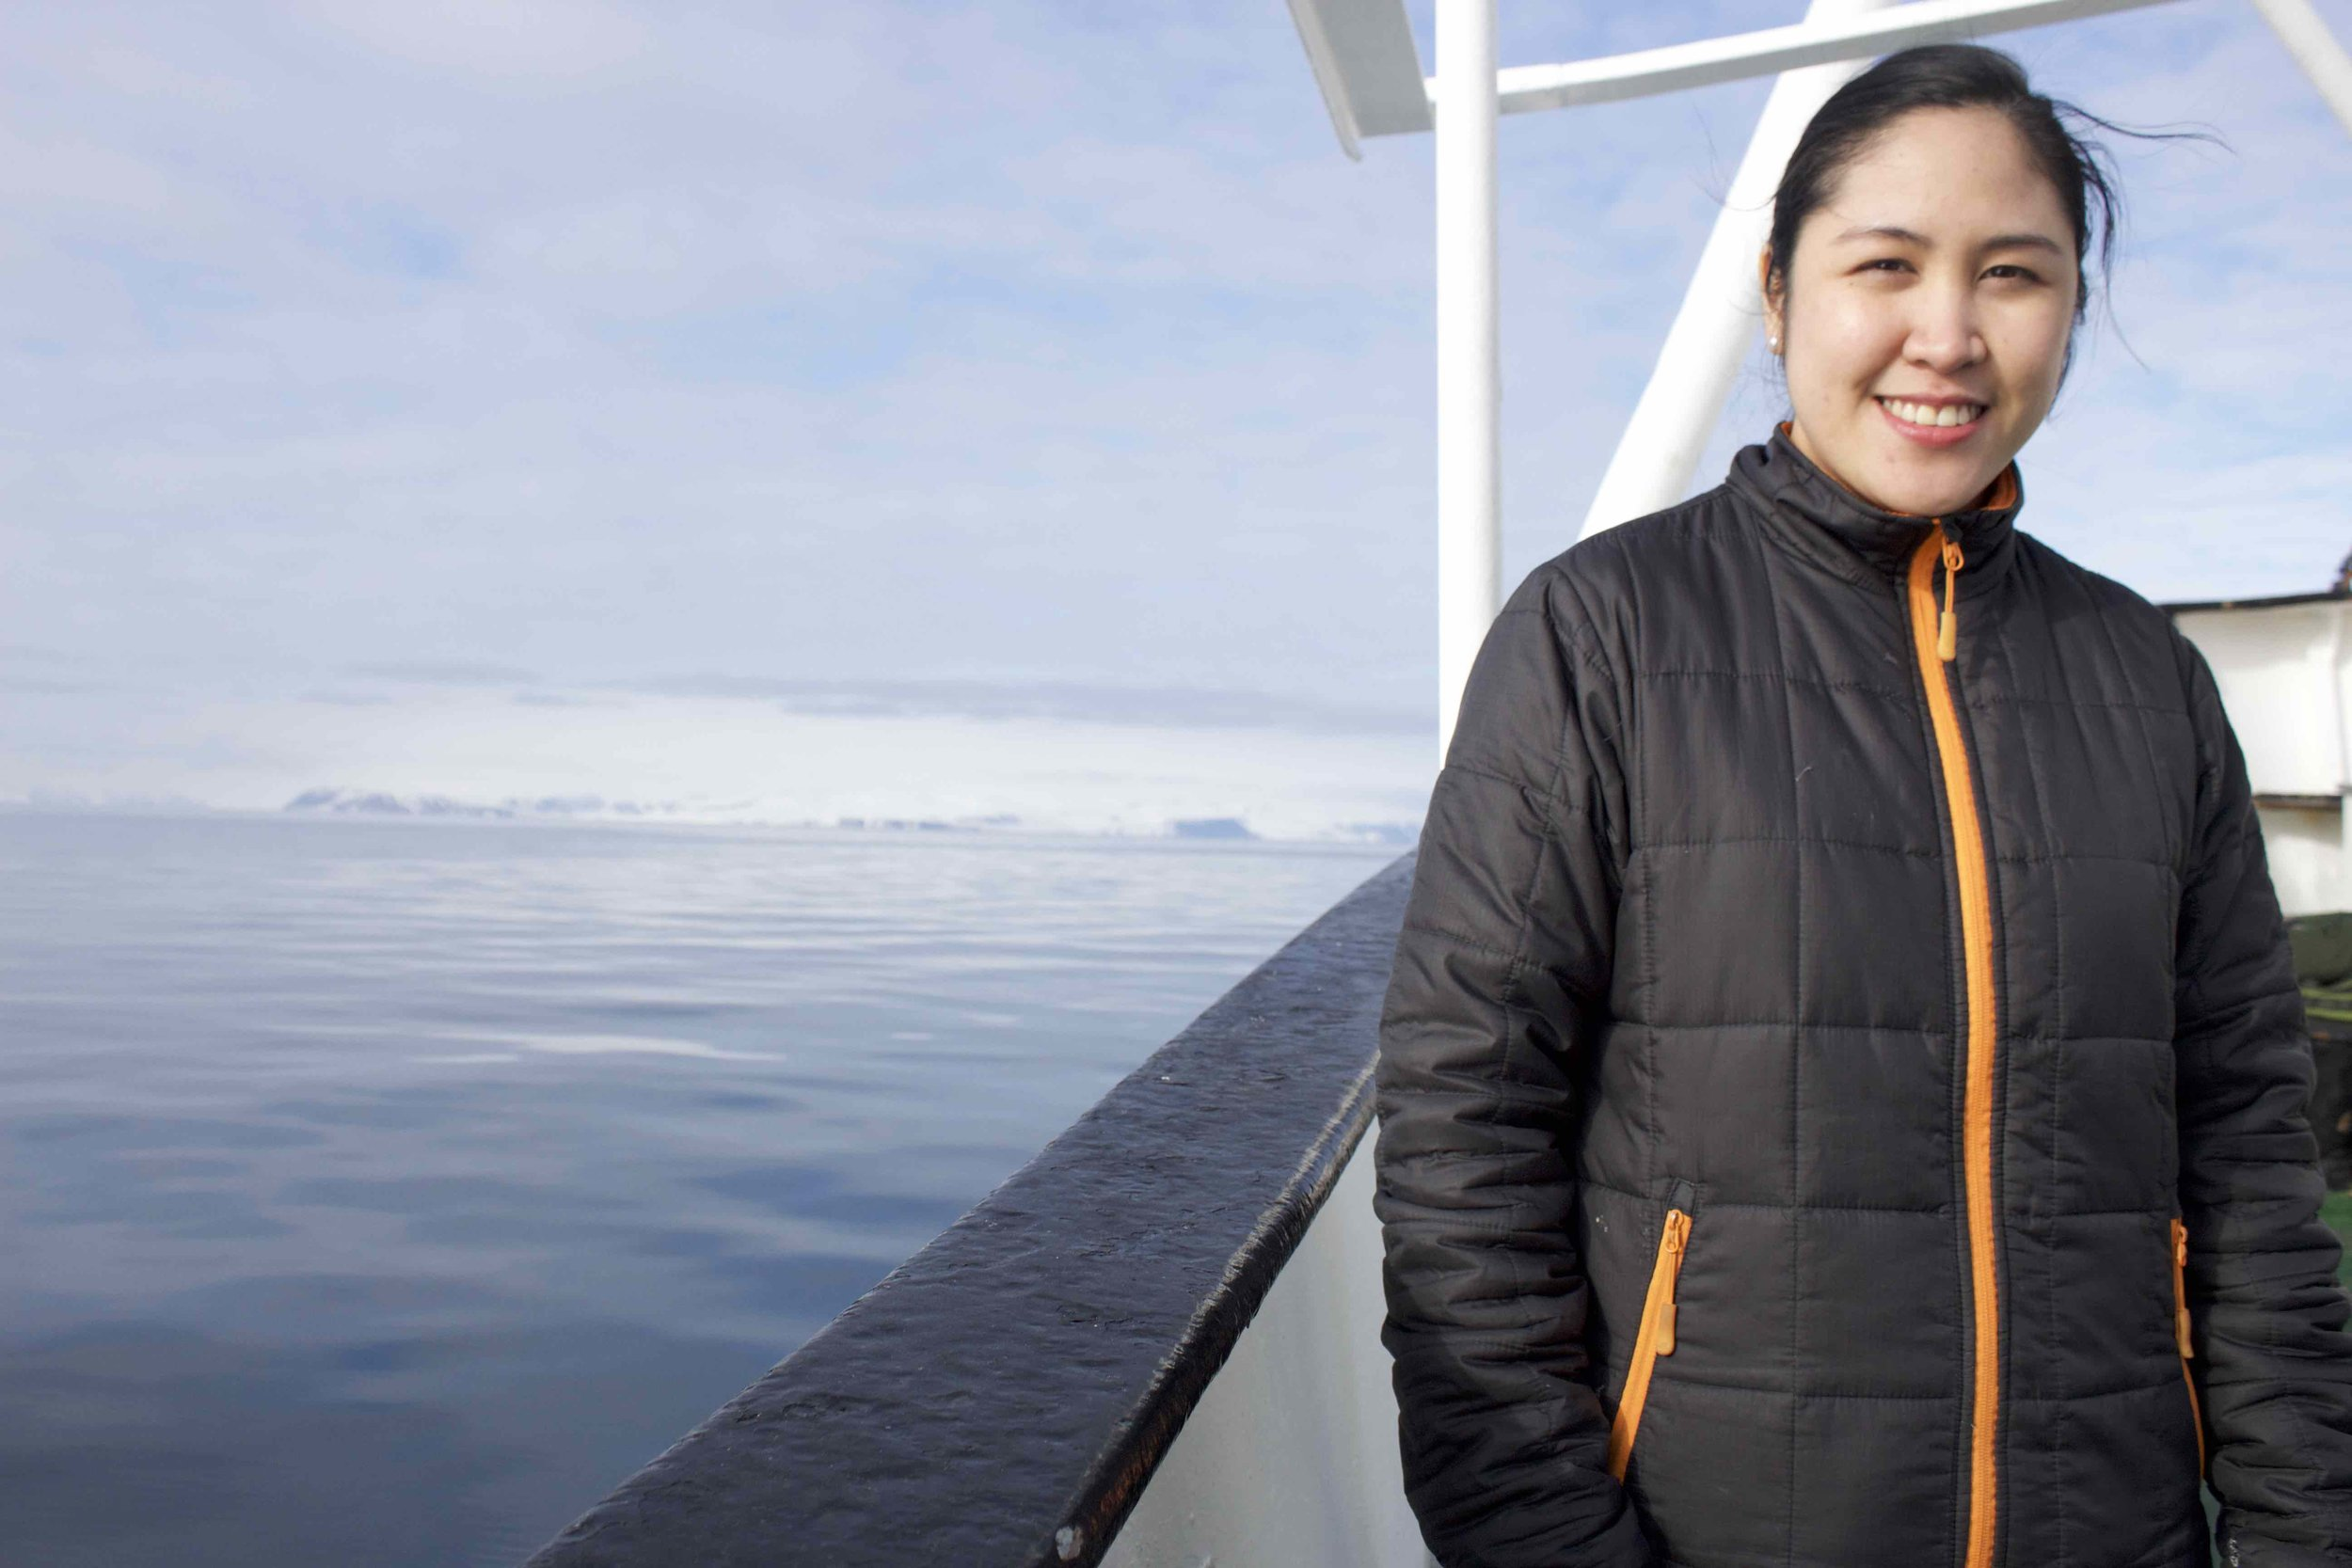 Mary Grace Eula travels north from the Philippines every year to work on a tourist boat in Svalbard, Norway. She is 24 years old and plans to start her own floating restaurant in her home country someday.